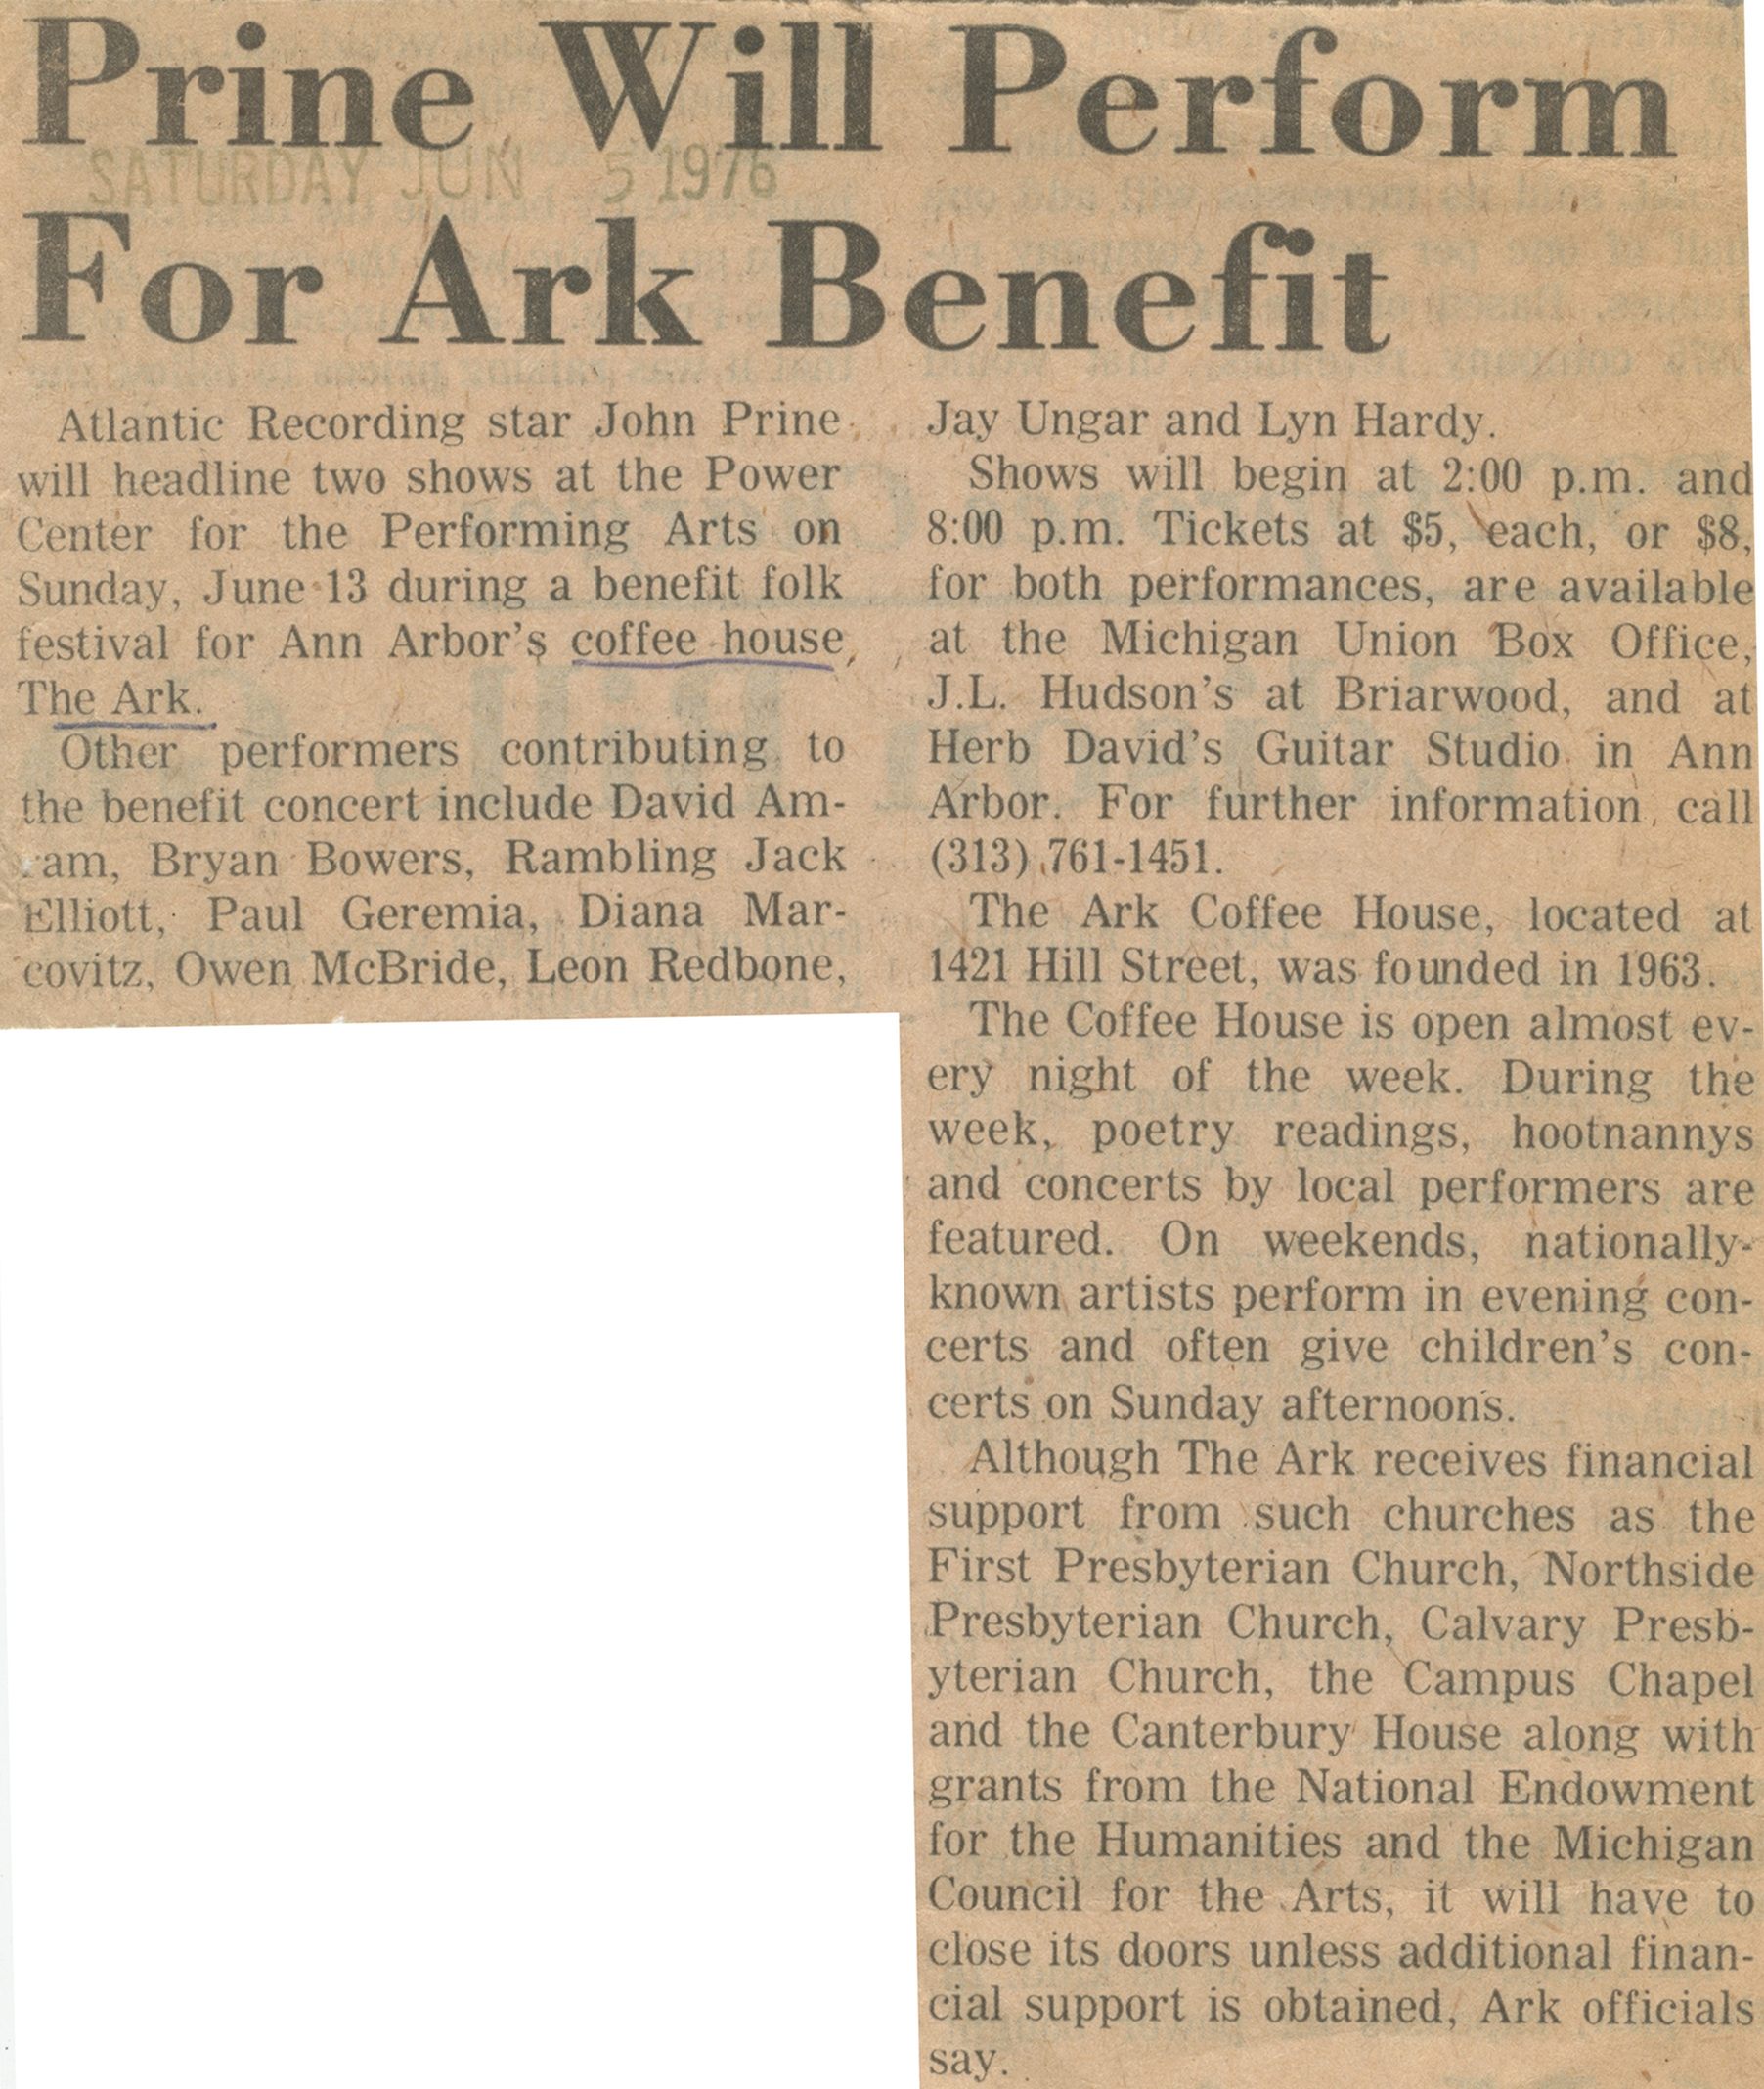 Prine Will Perform For Ark Benefit image